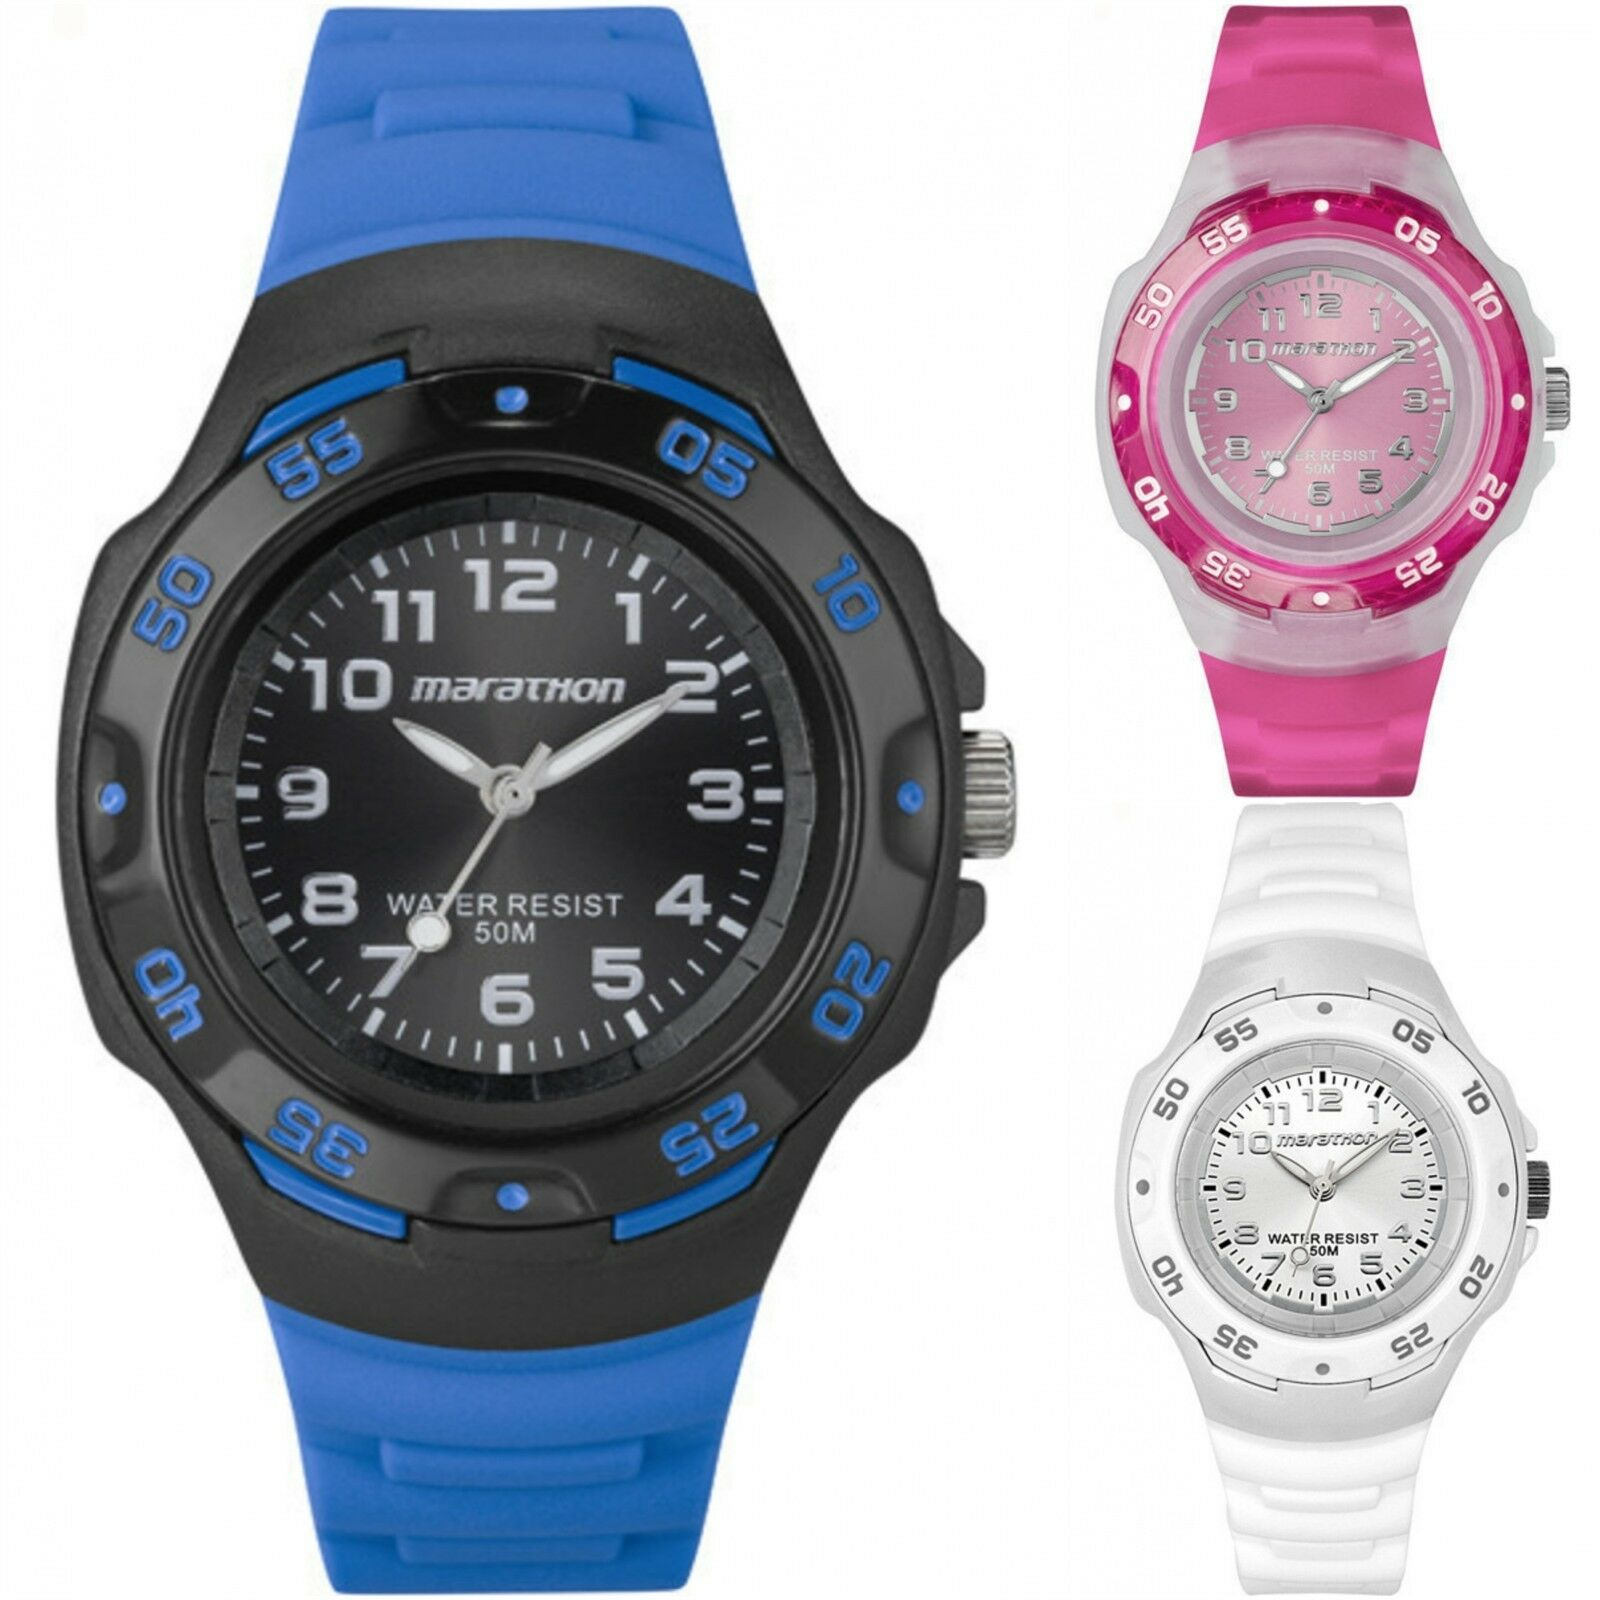 Timex Women's Marathon | Resin Strap 50m Water Resistant | Analog Watch